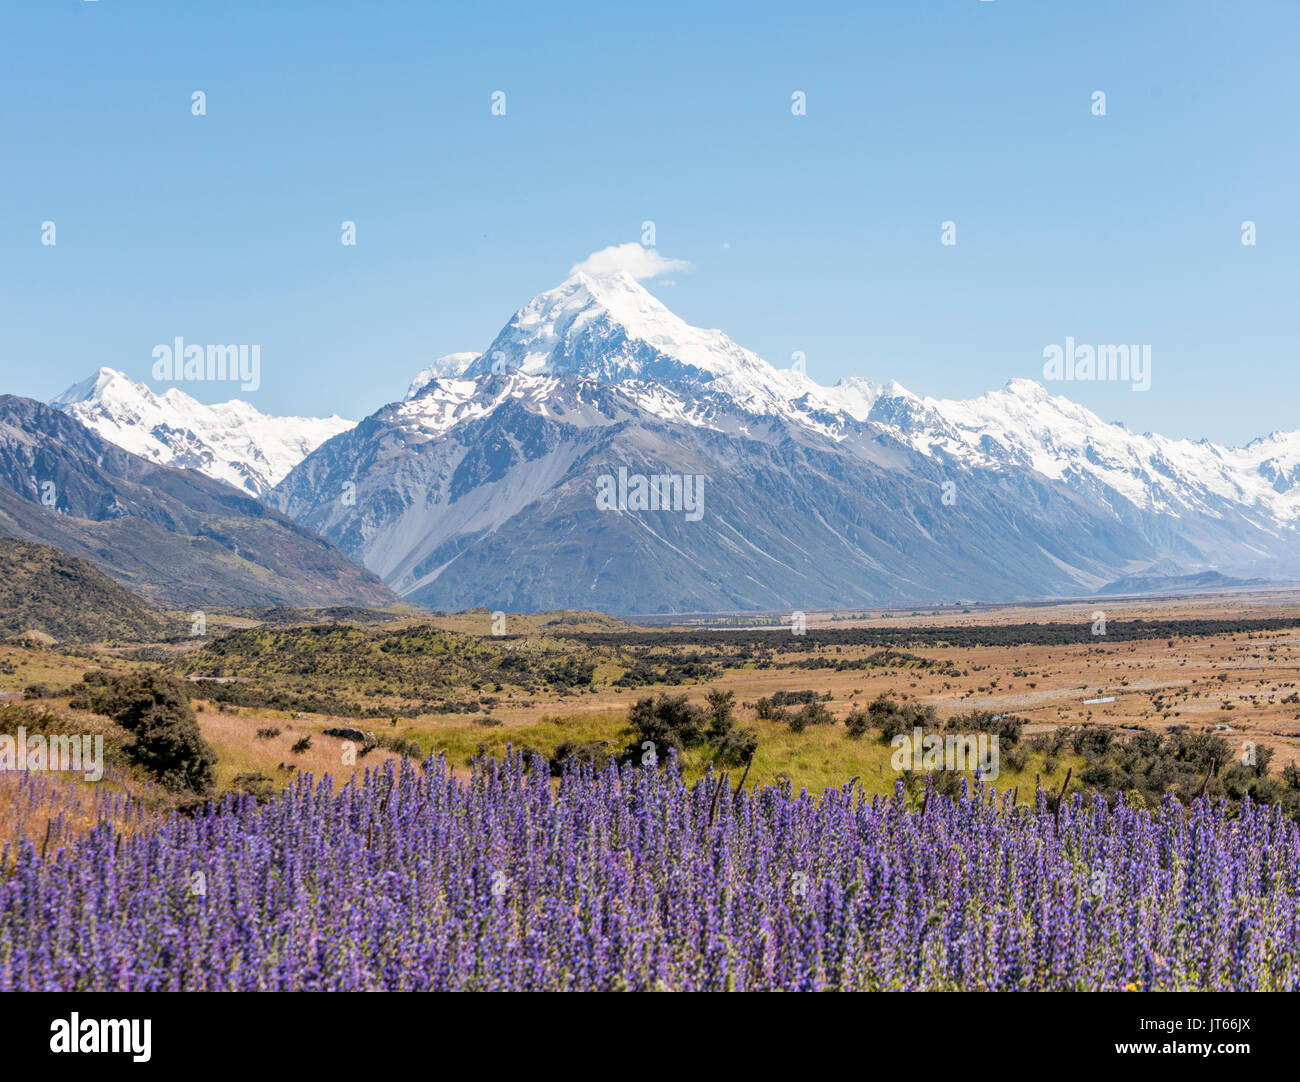 Flowering Purple Flowers, Mount Cook, Snowy Mountains, Mount Cook National Park Southern Alps, Canterbury, South Island - Stock Image